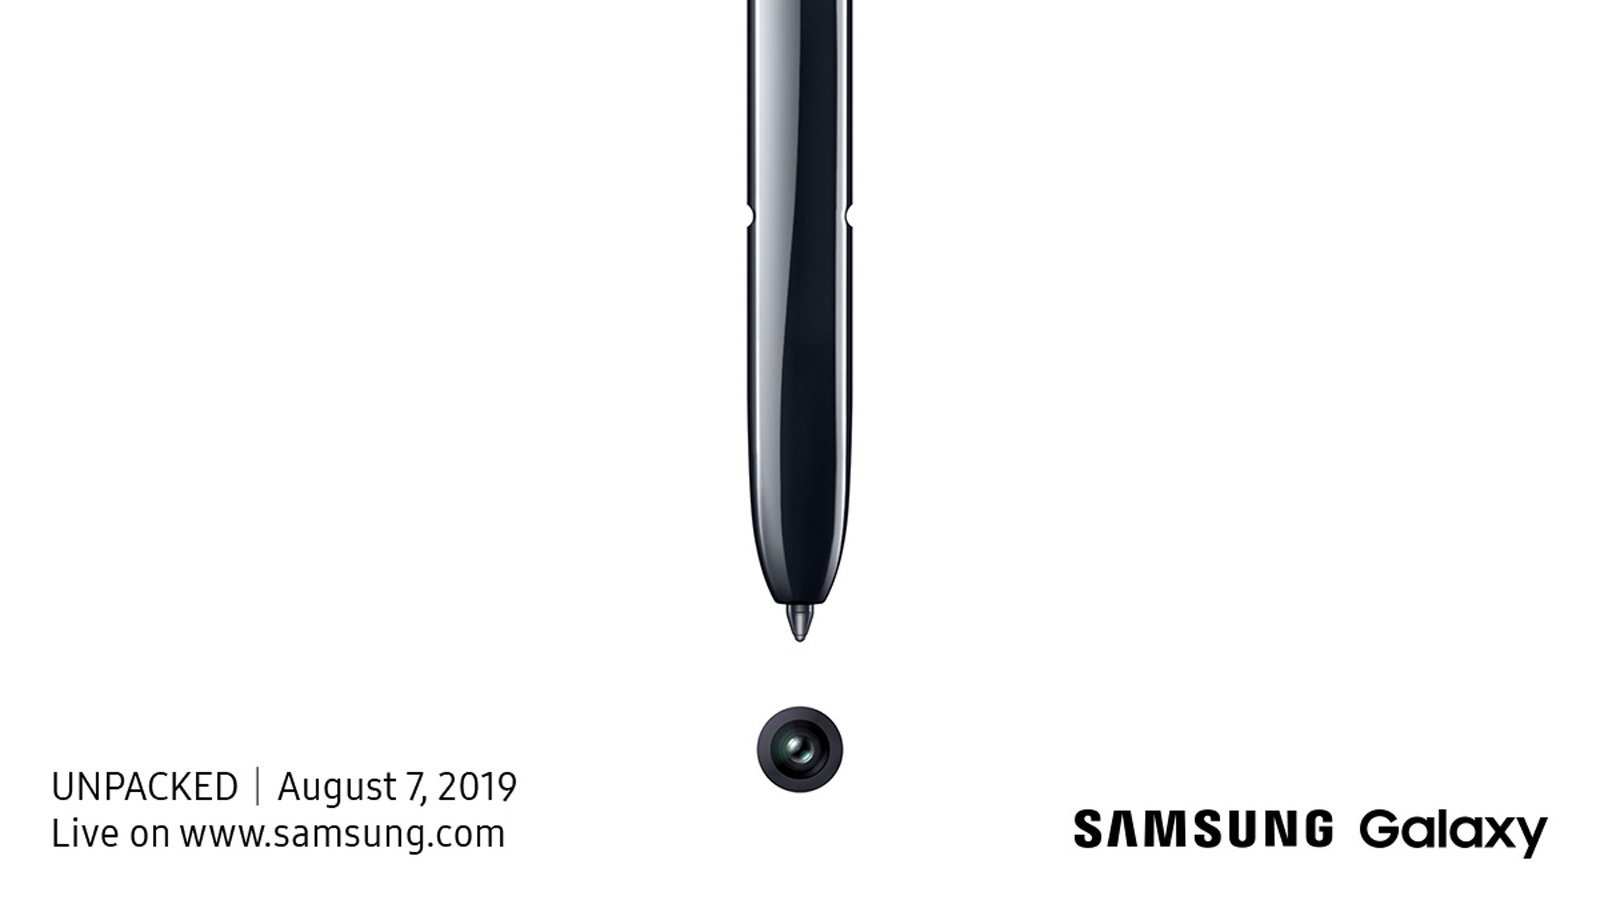 Samsung will unveil the Galaxy Note 10 on August 7th | DeviceDaily.com